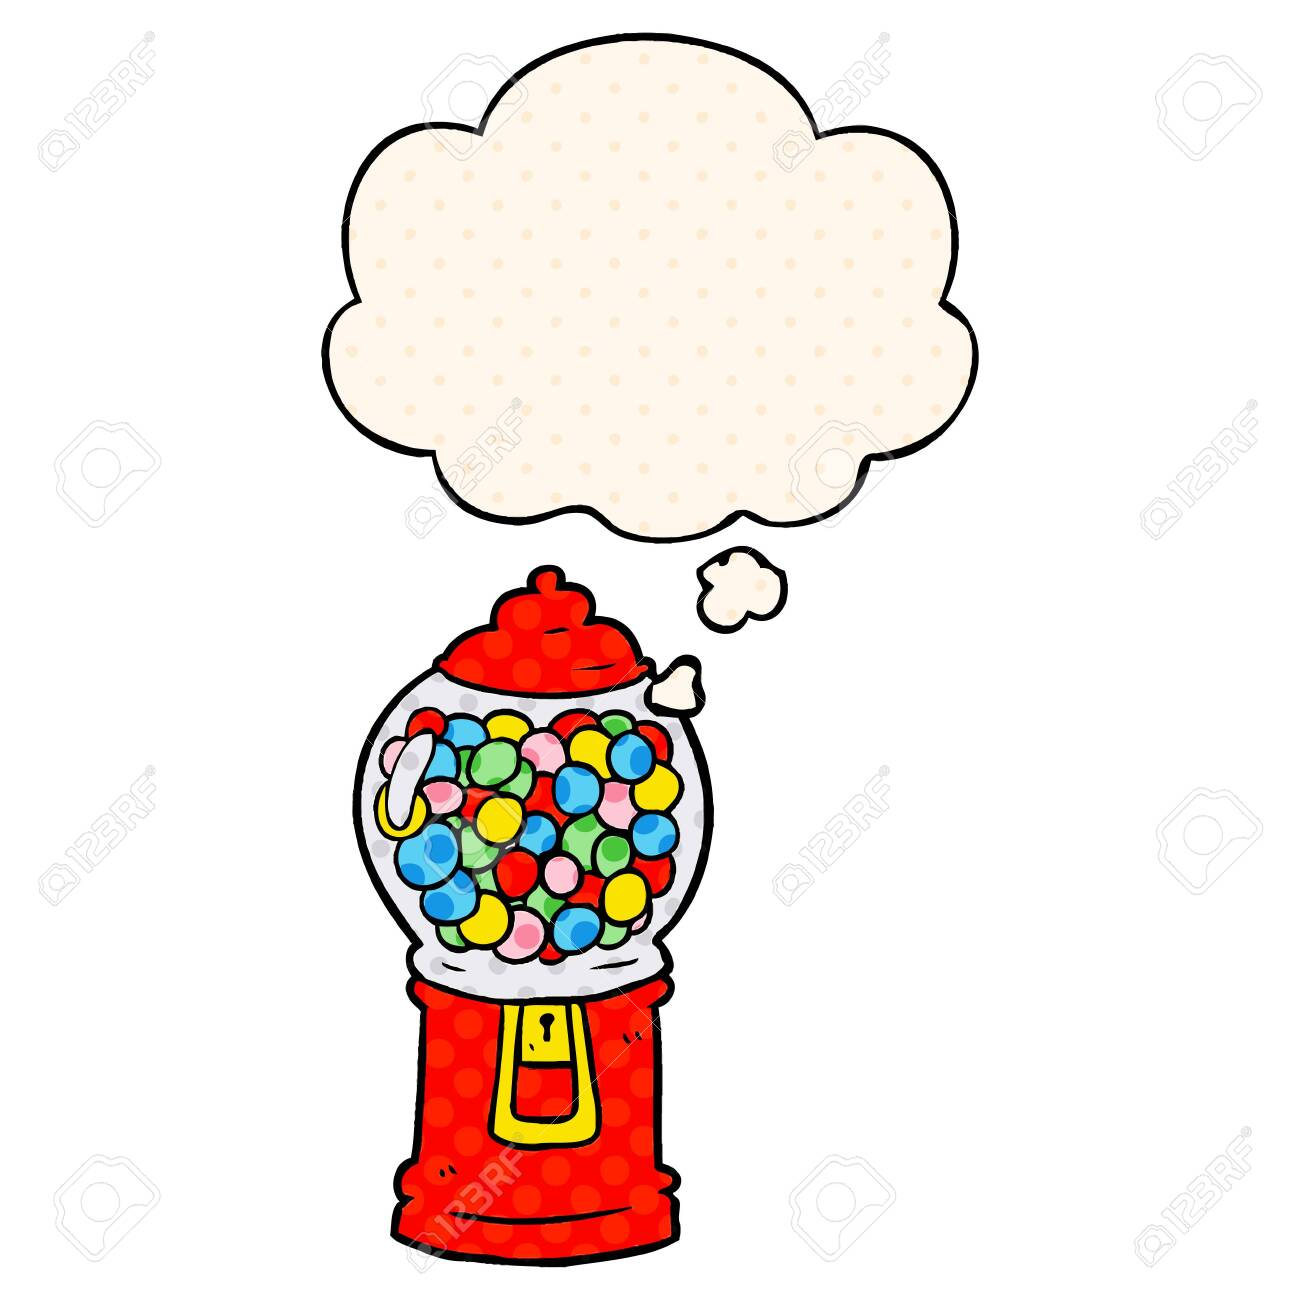 Gumball Machine Clip Art - Gumball Machine Clipart - Free Transparent PNG  Clipart Images Download